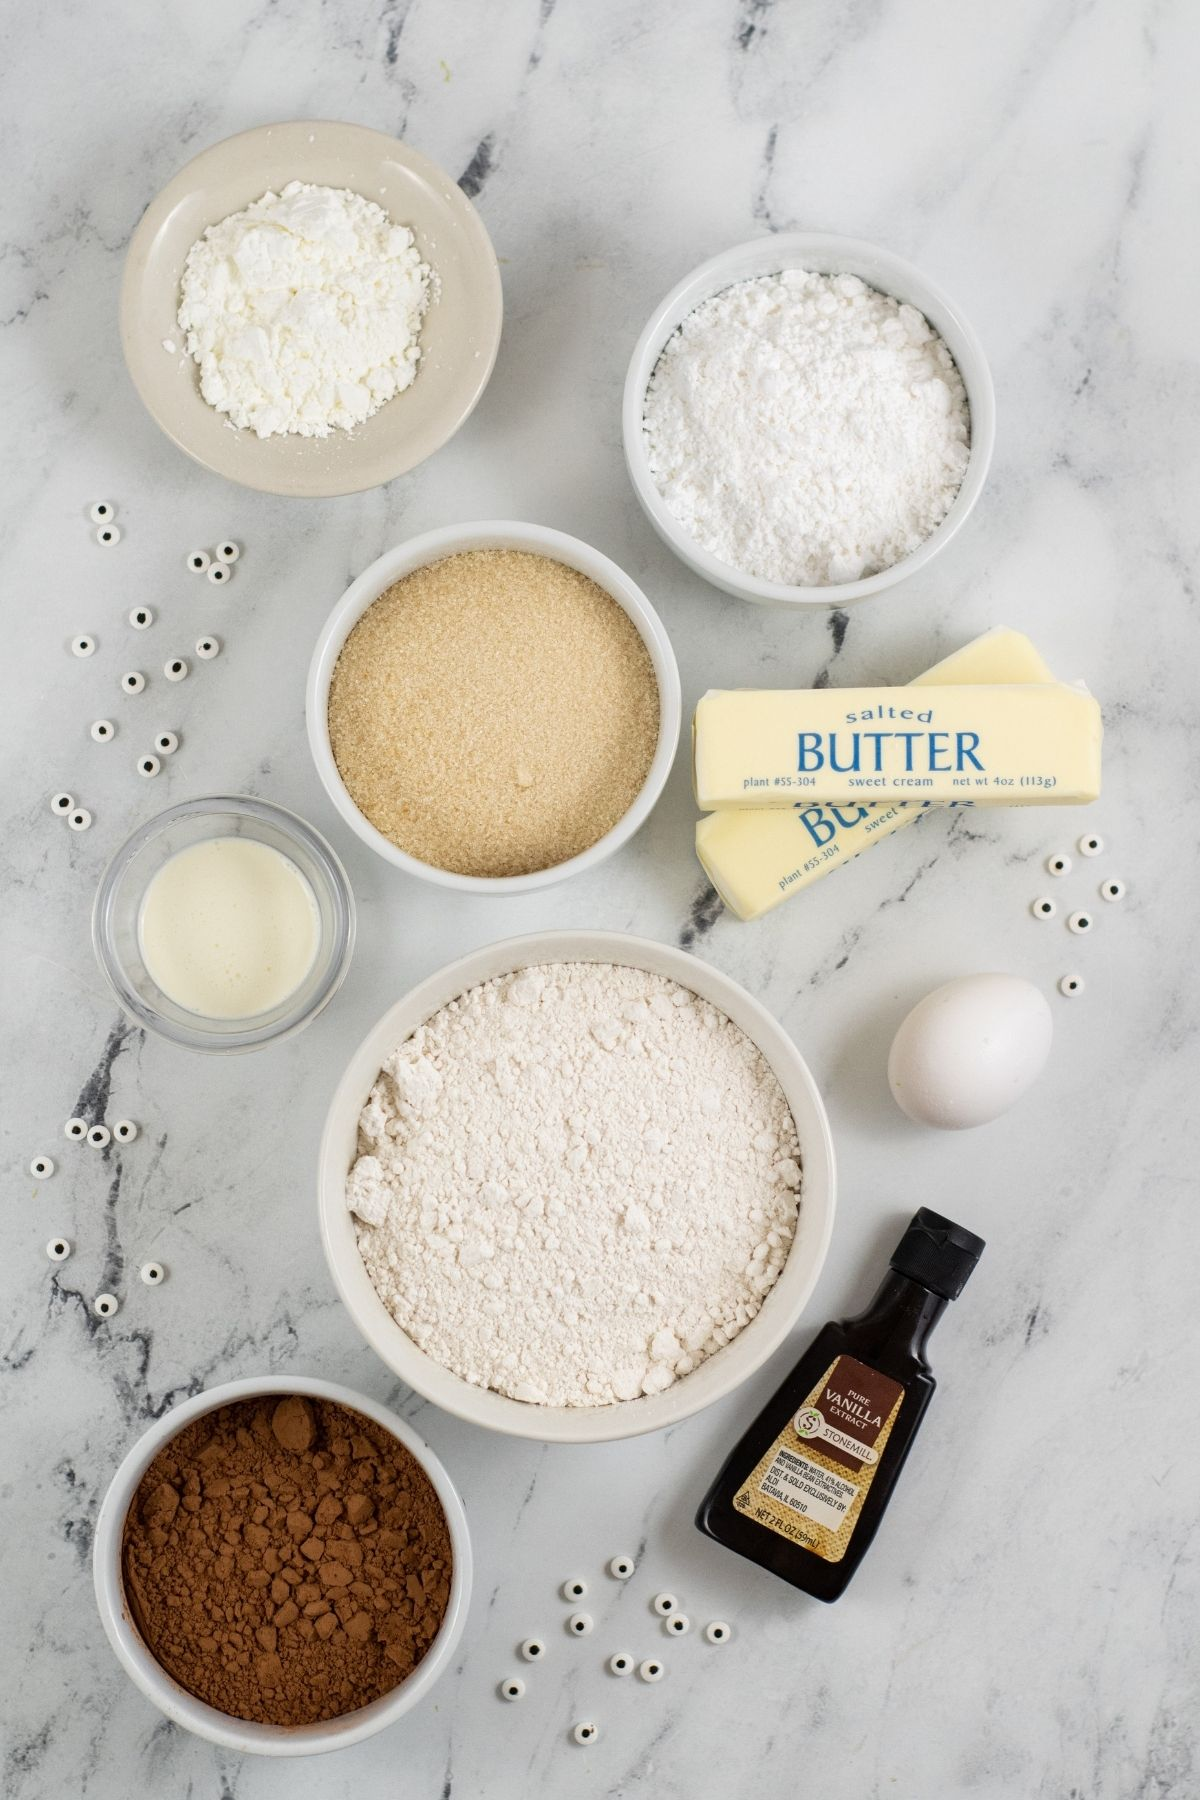 ingredients in white bowls on white counter: flour, corn starch, salt, cocoa, sugar, 2 sticks of butter, egg, vanilla, and candy eye balls